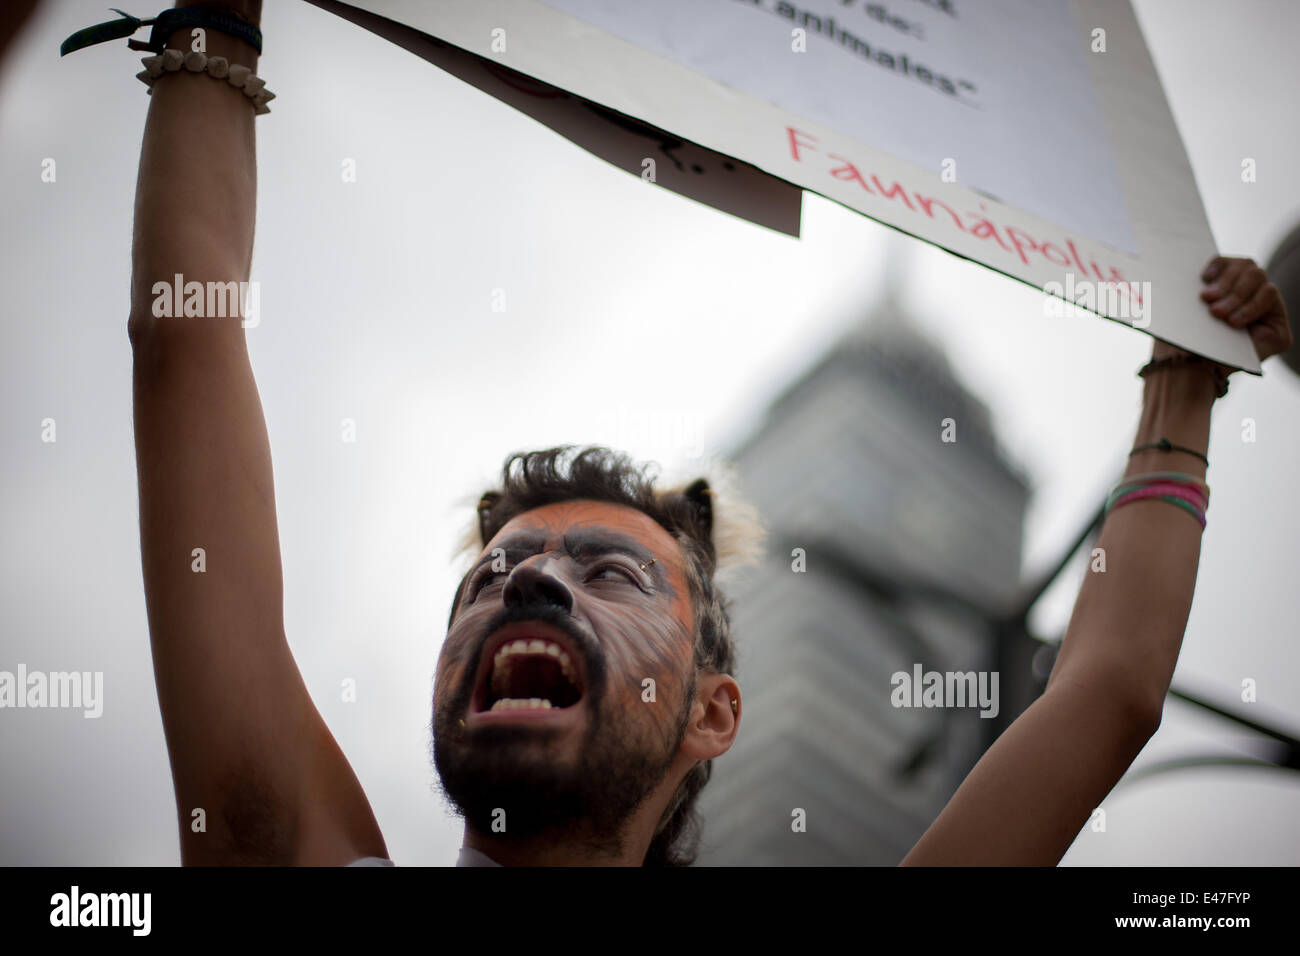 Mexico City, Mexico. 4th July, 2014. A man with his face painted takes part in a protest against the mistreatment - Stock Image